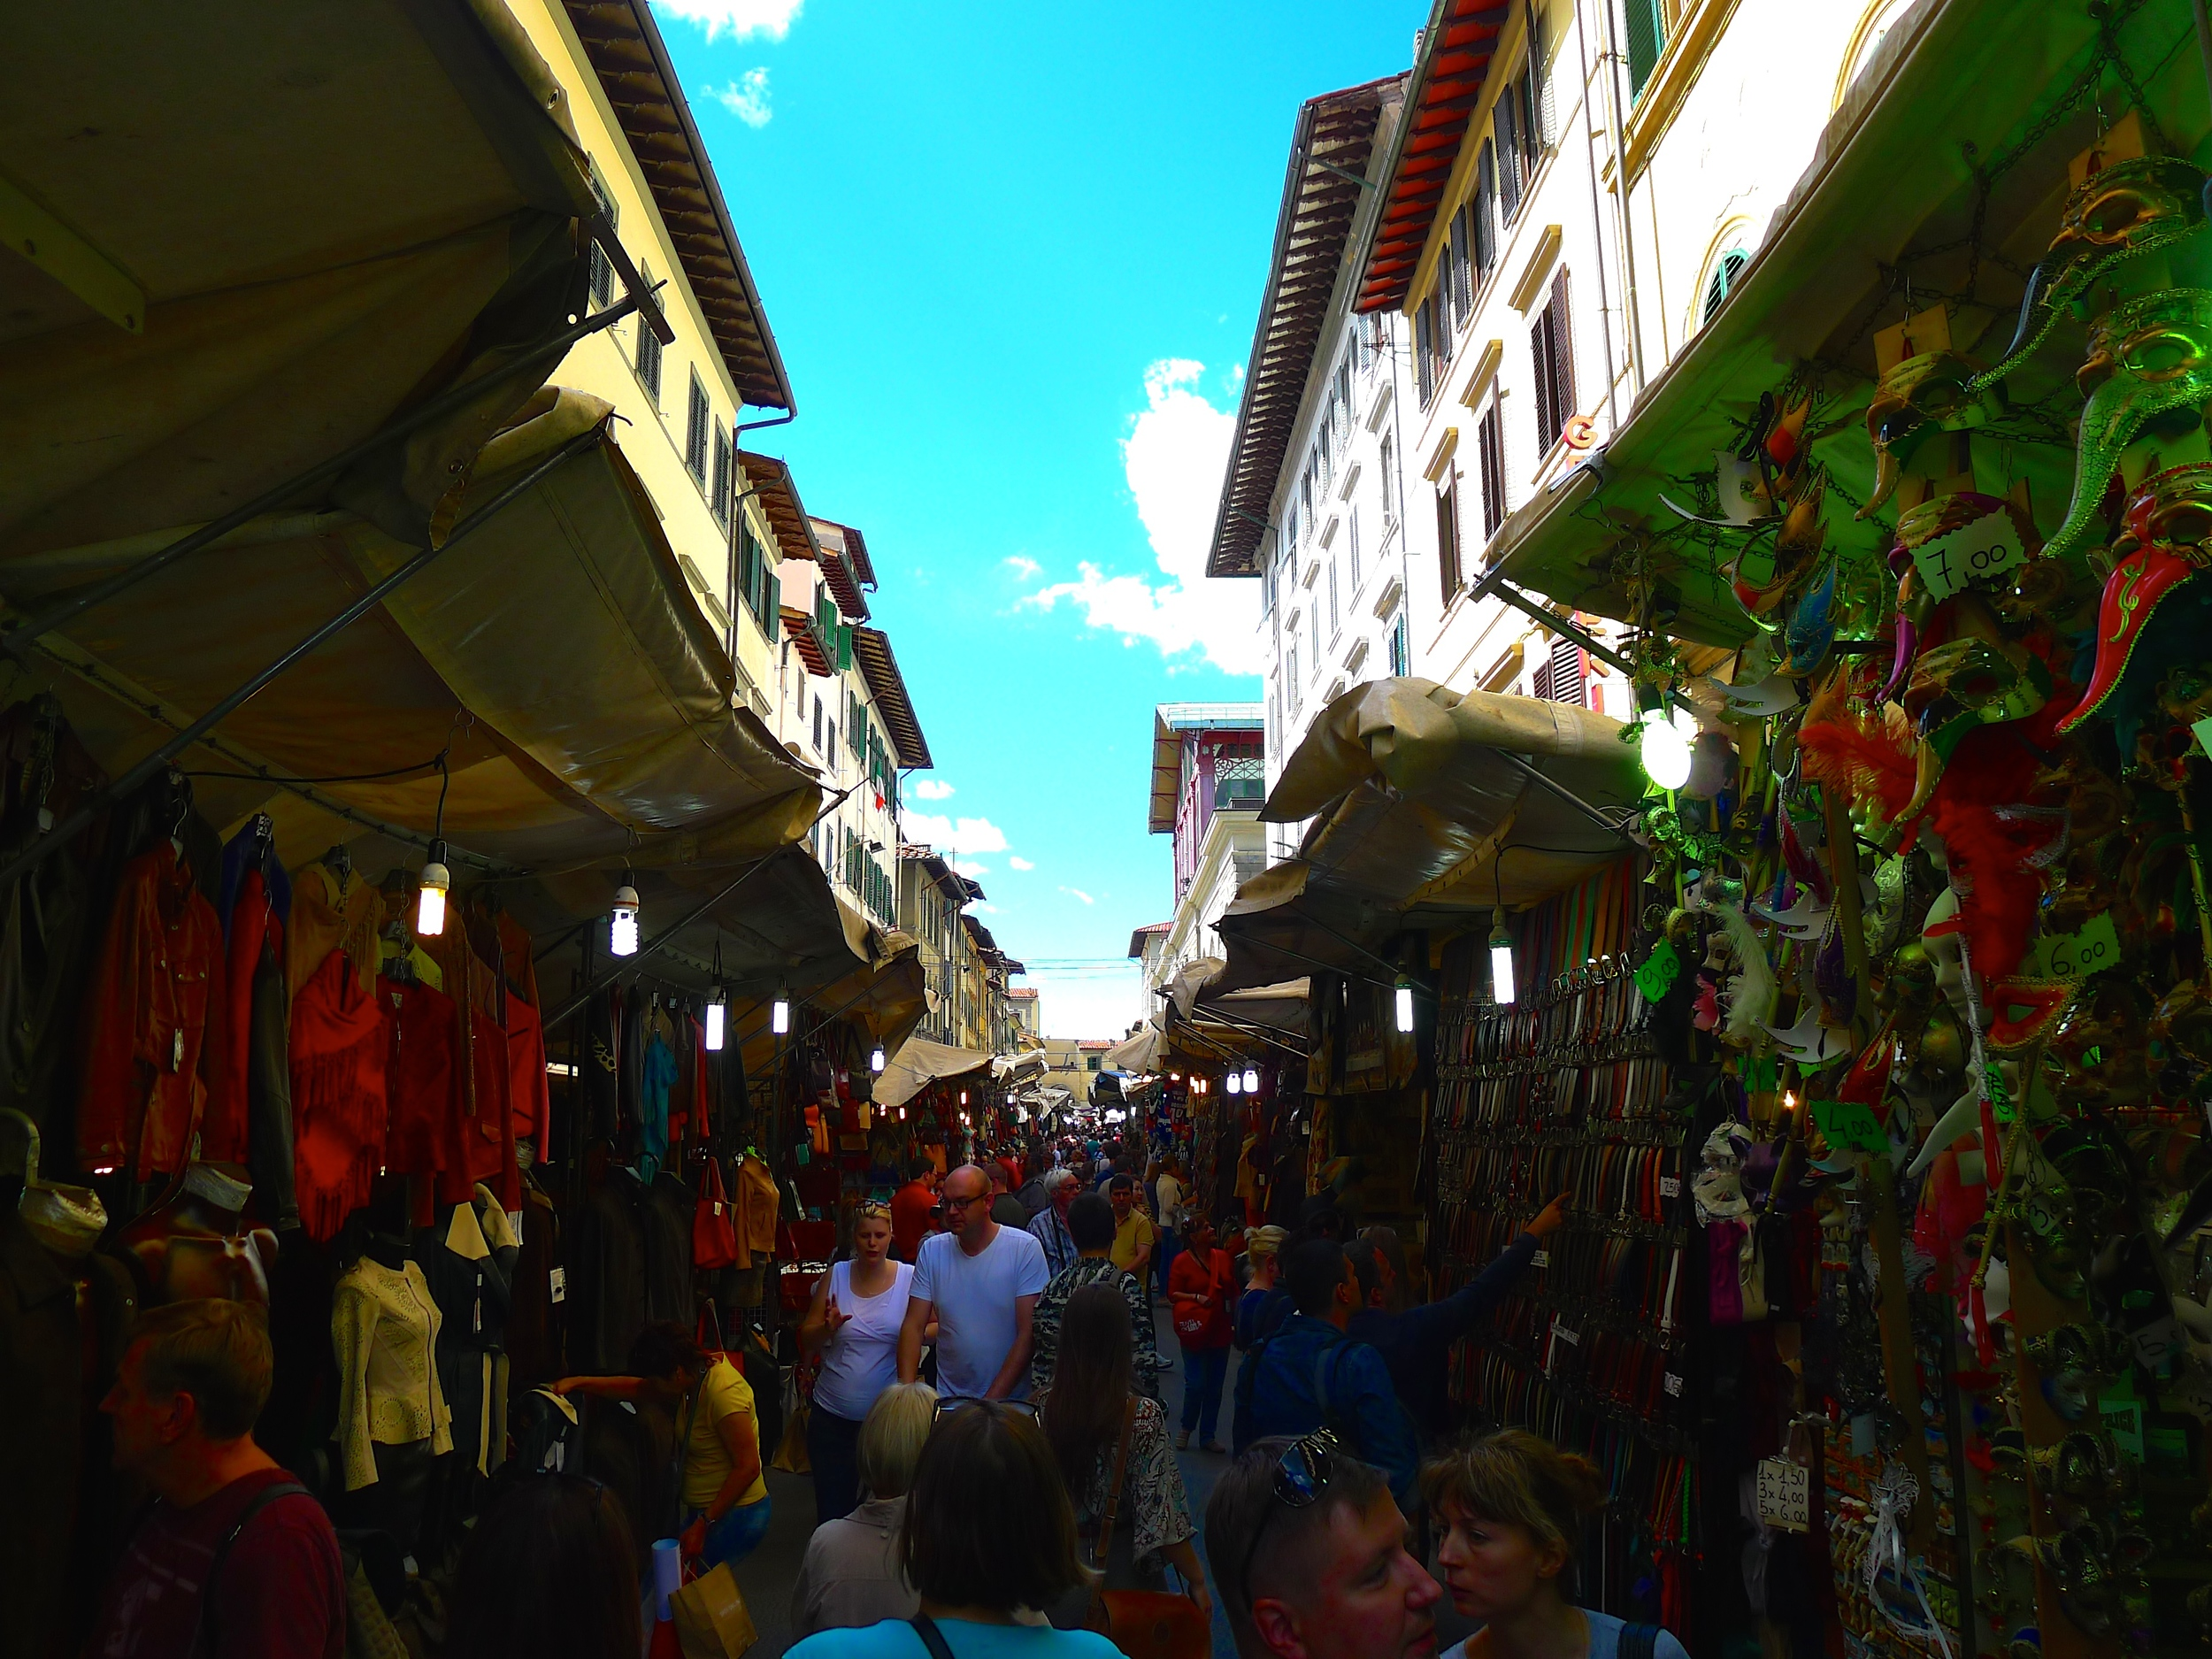 The street markets in Florence, Italy.